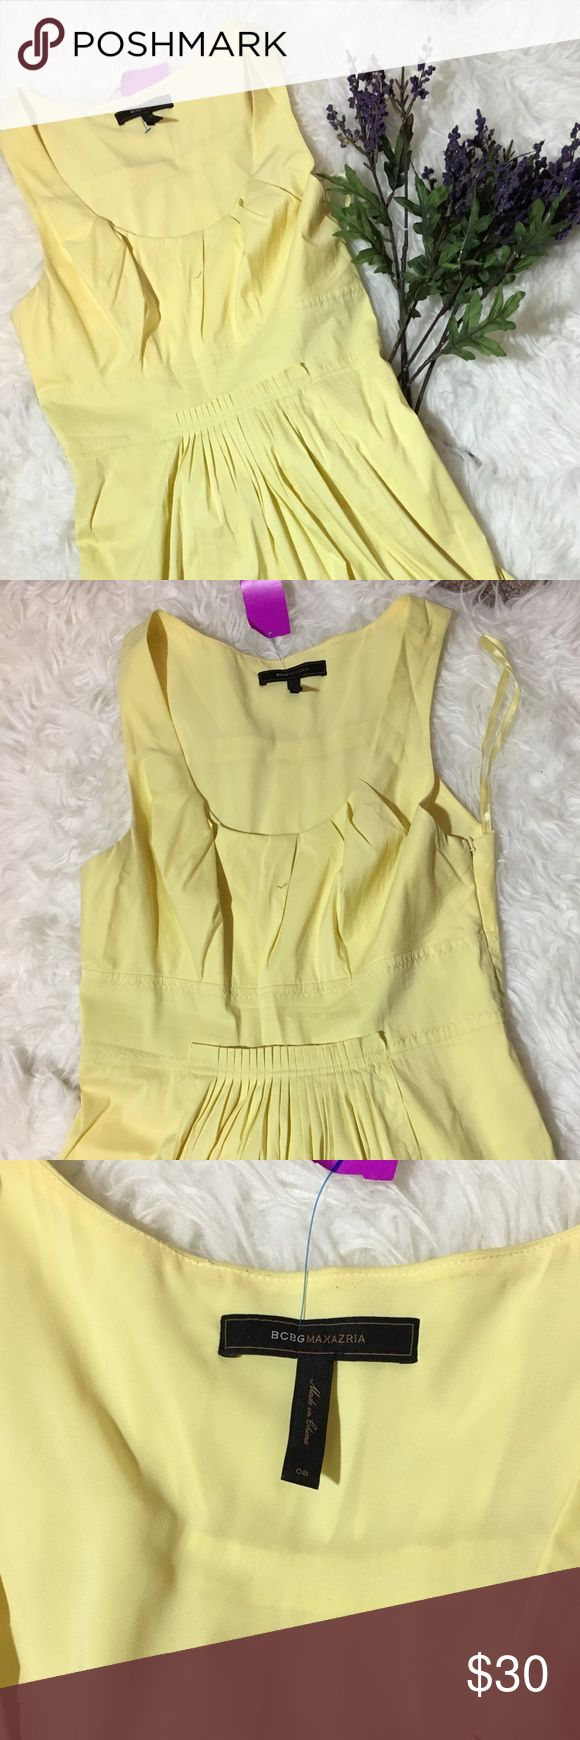 BCBG Yellow Dress Size 8 BCBG Light Yellow Dress. Preowned. Pleated at skirtline. 39 inches long. 16 inches across chest. Size 8. Lightly lined. Cotton and nylon. Dry clean. BCBG Dresses